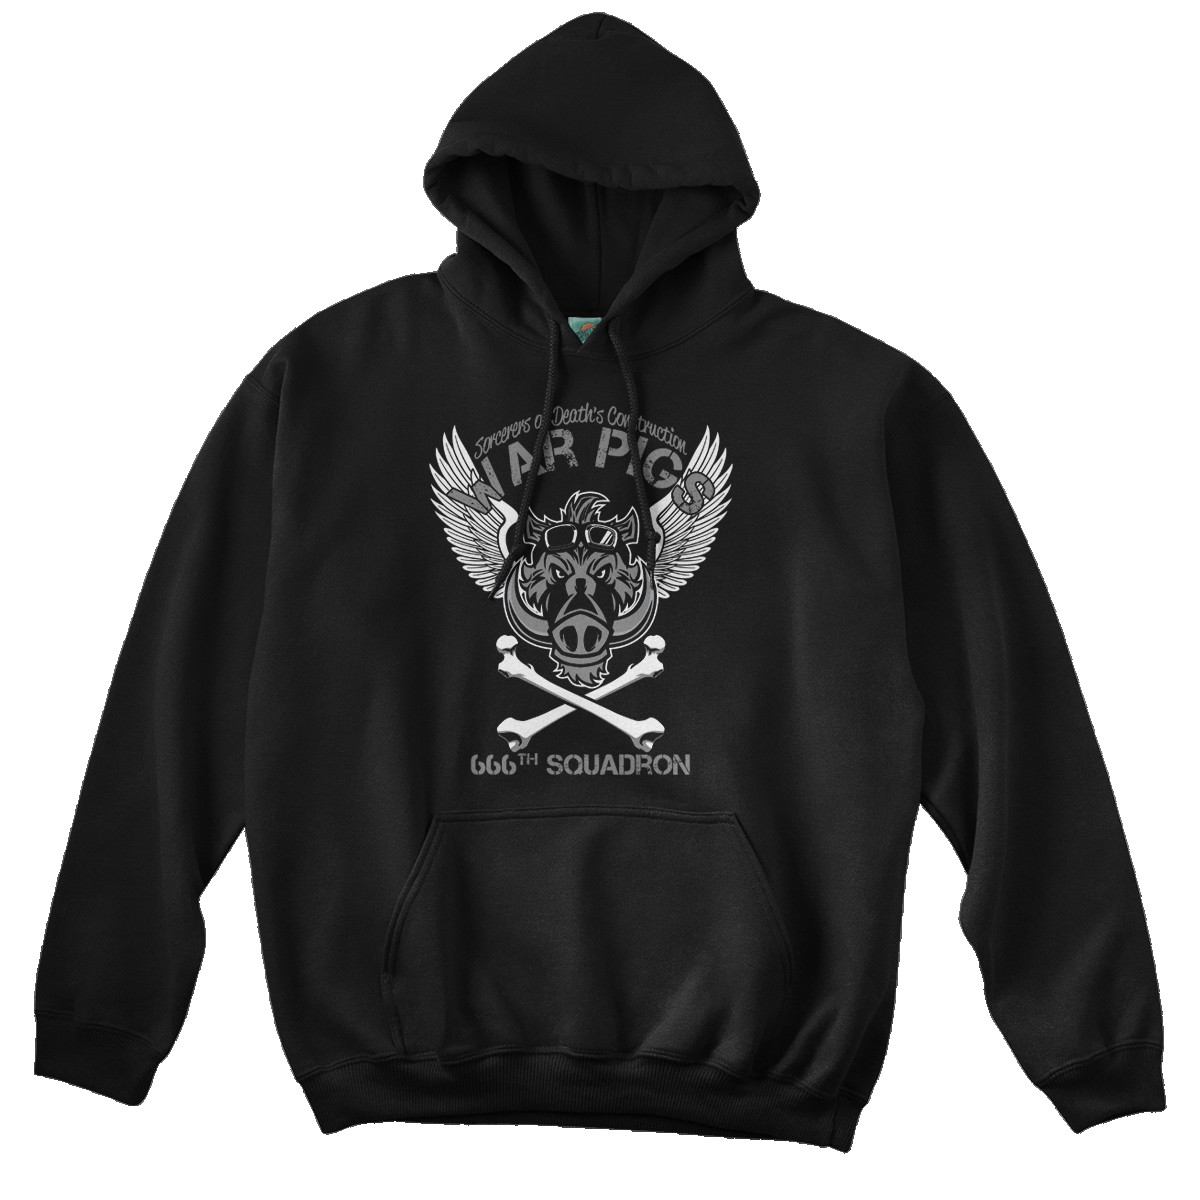 Black-Sabbath-War-Pigs-666th-Battalion-inspired-Hoodie